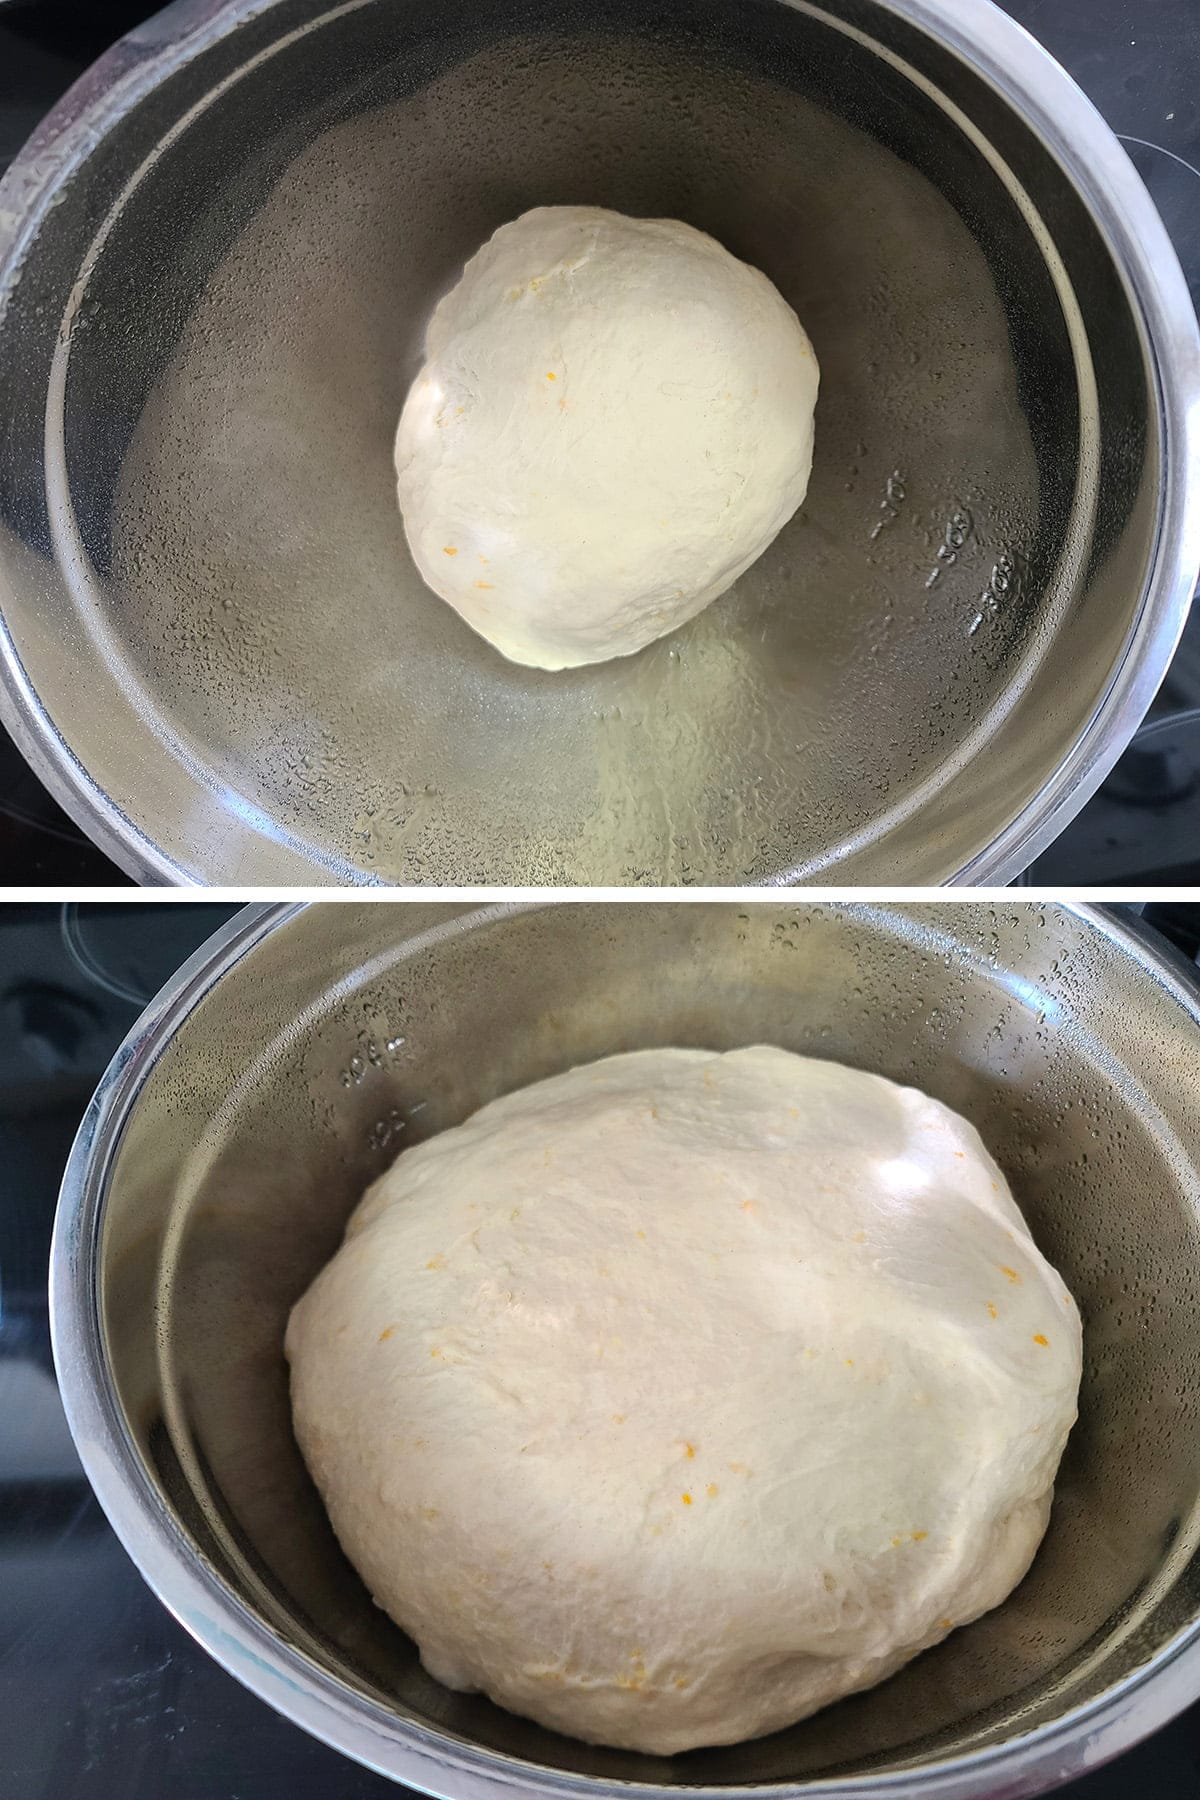 A two part compilation image showing the dough before and after rising. In the second image, the dough is more than twice the size it was in the first image.